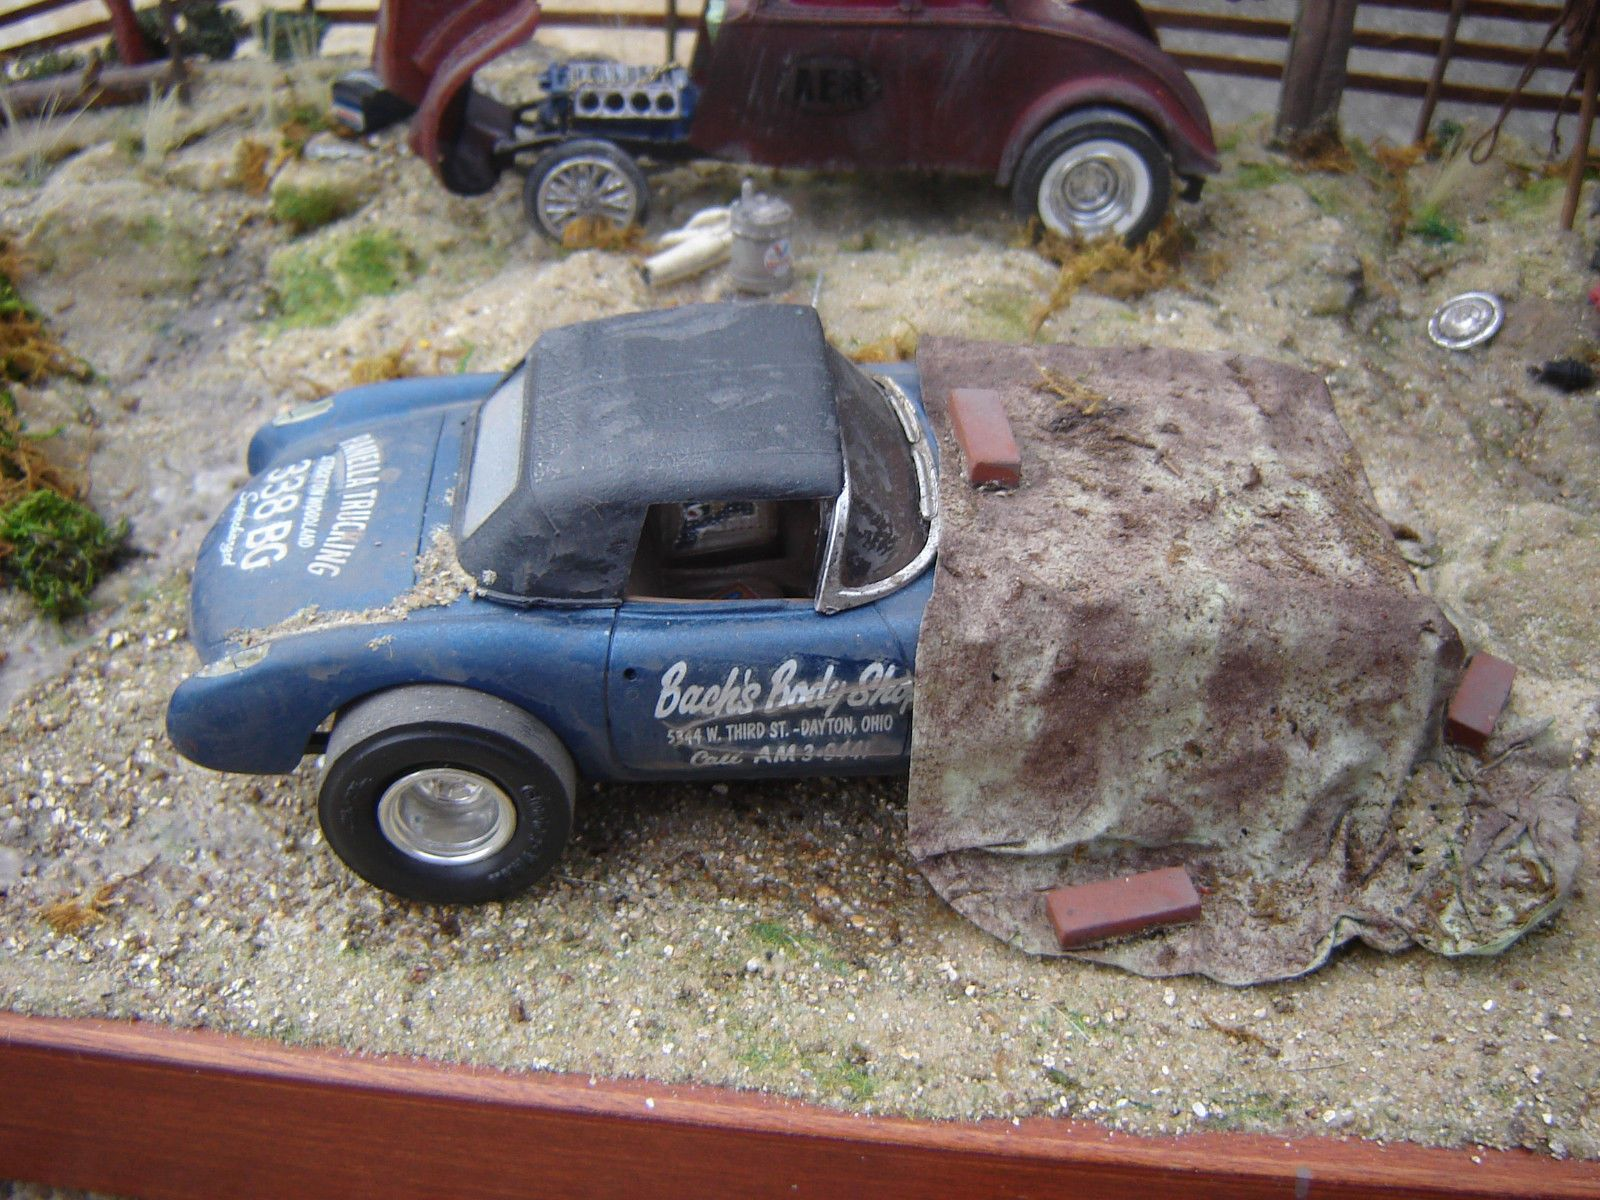 1 25 Model Car Kit Built Diorama Vette Willys Gassers Junkyard Parts Car Model Model Cars Kits Car